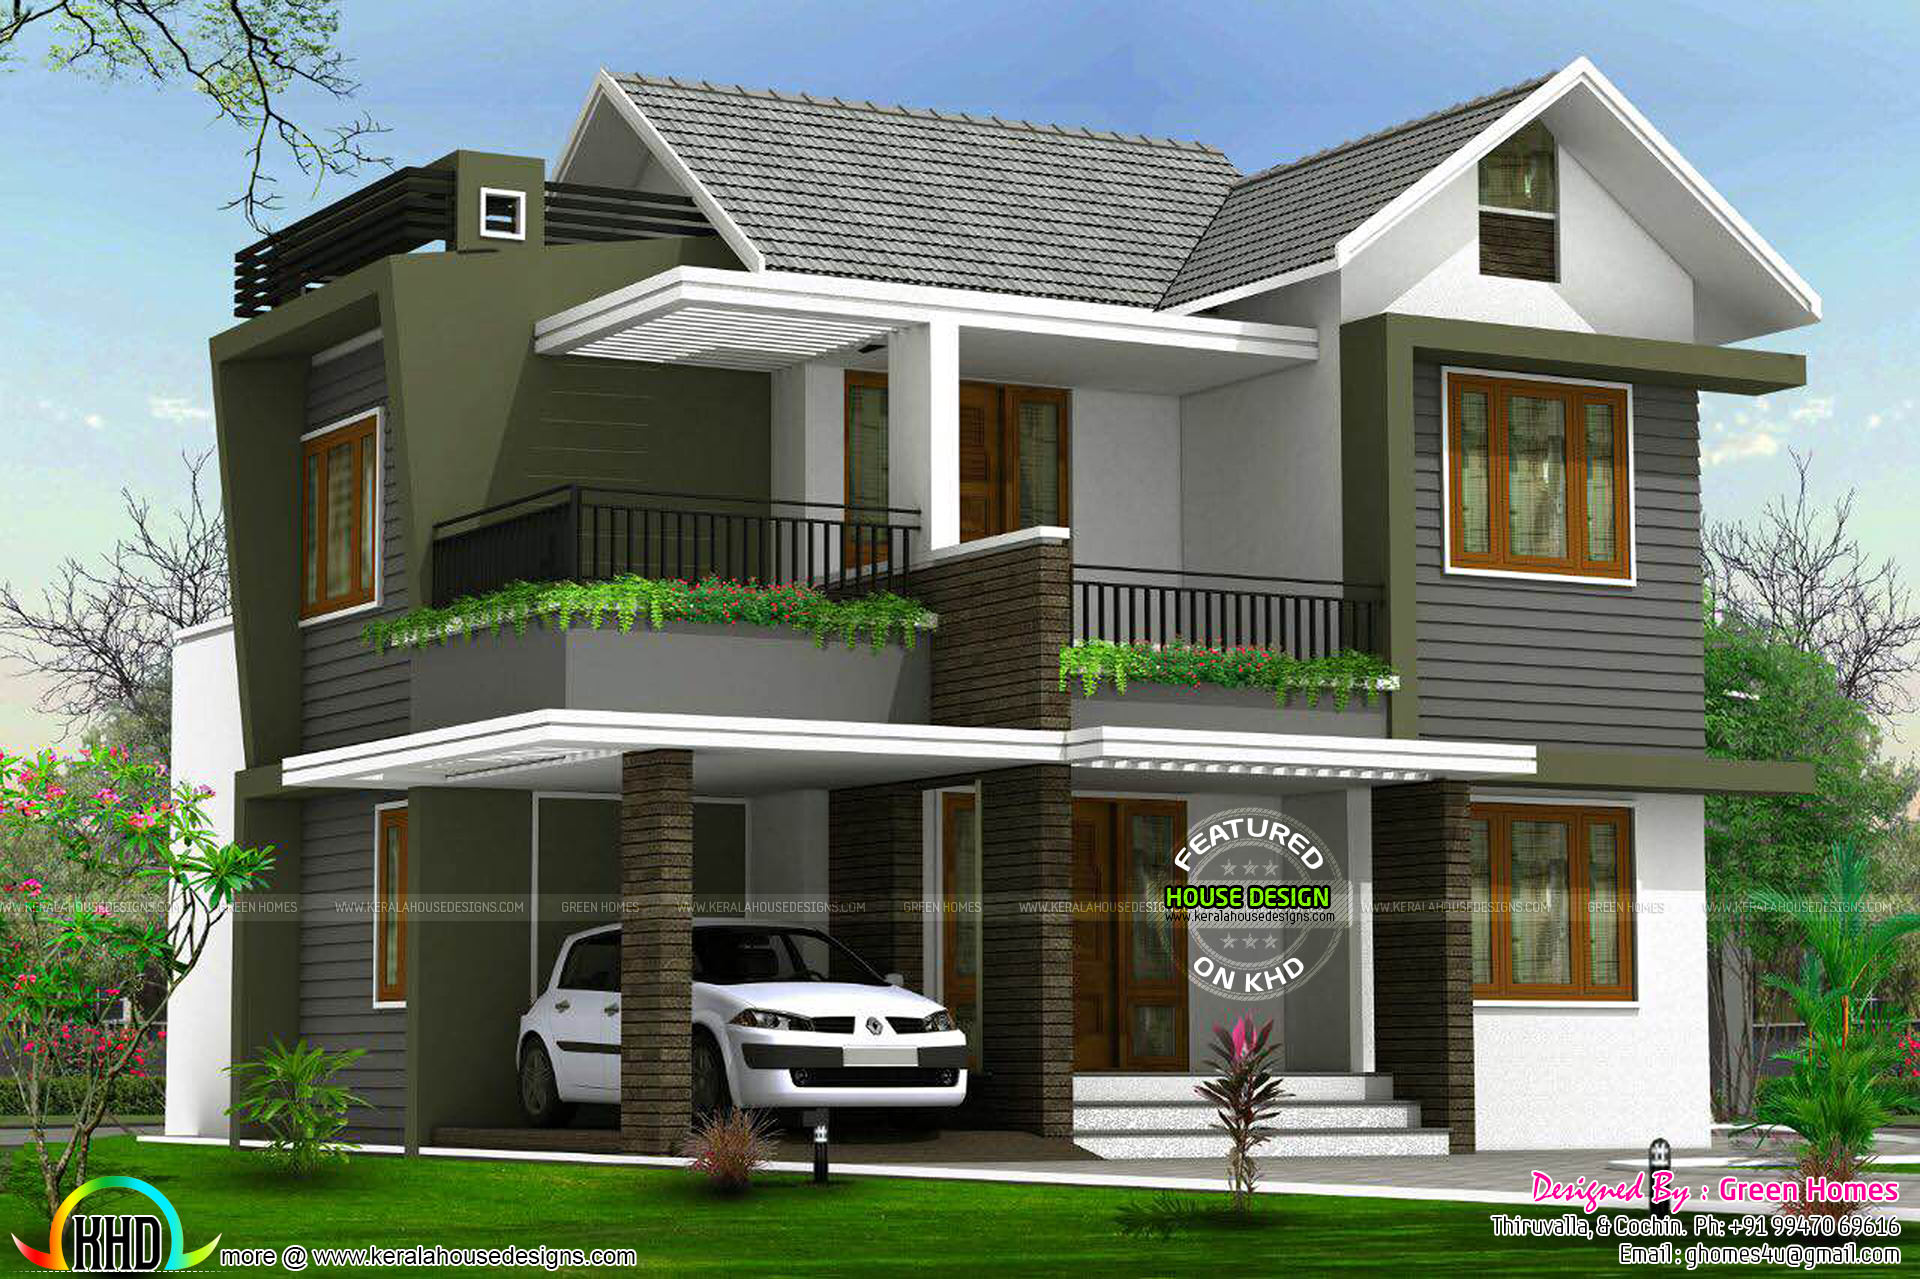 4BHK floor plan and elevation in 5 cent | Kerala home design ... on kerala villa elevation, kerala model house design, kerala house floor plans, kerala house plans and elevations,